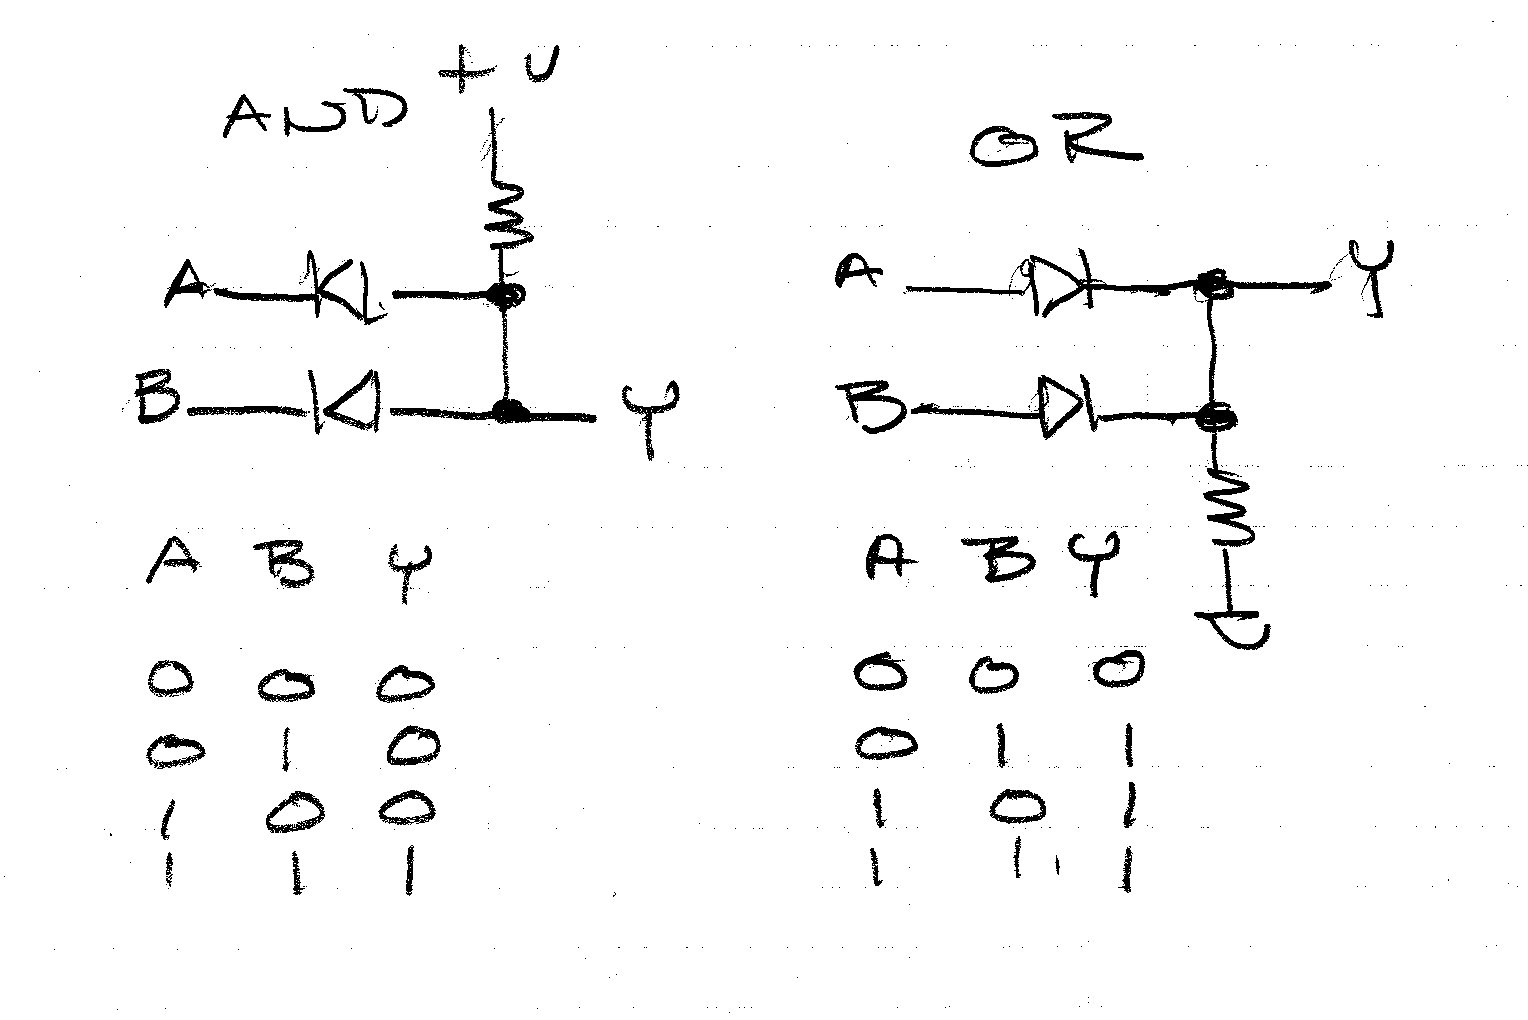 circuit diagram arrow pointing resistor